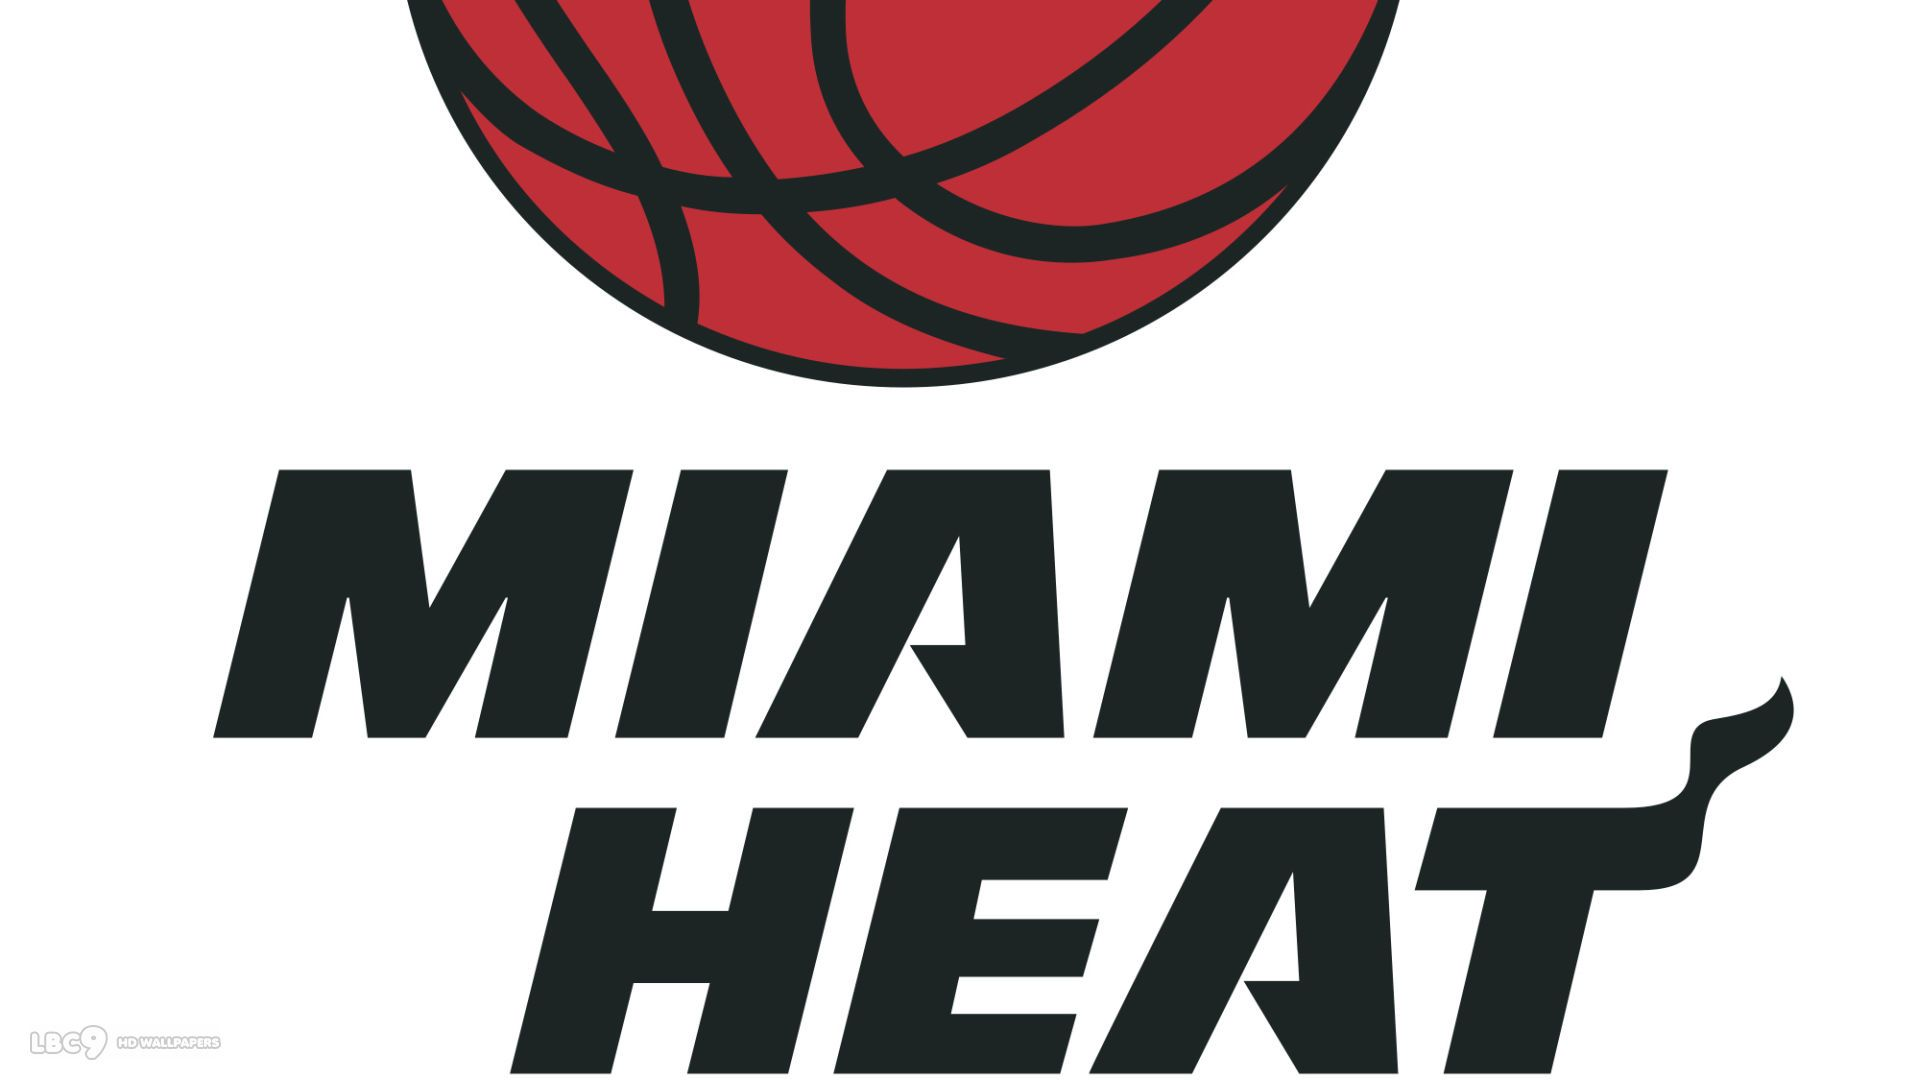 Miami heat logo free large images fav sport teams pinterest jpg 1920x1080  Nba heat symbol word 8e42db156